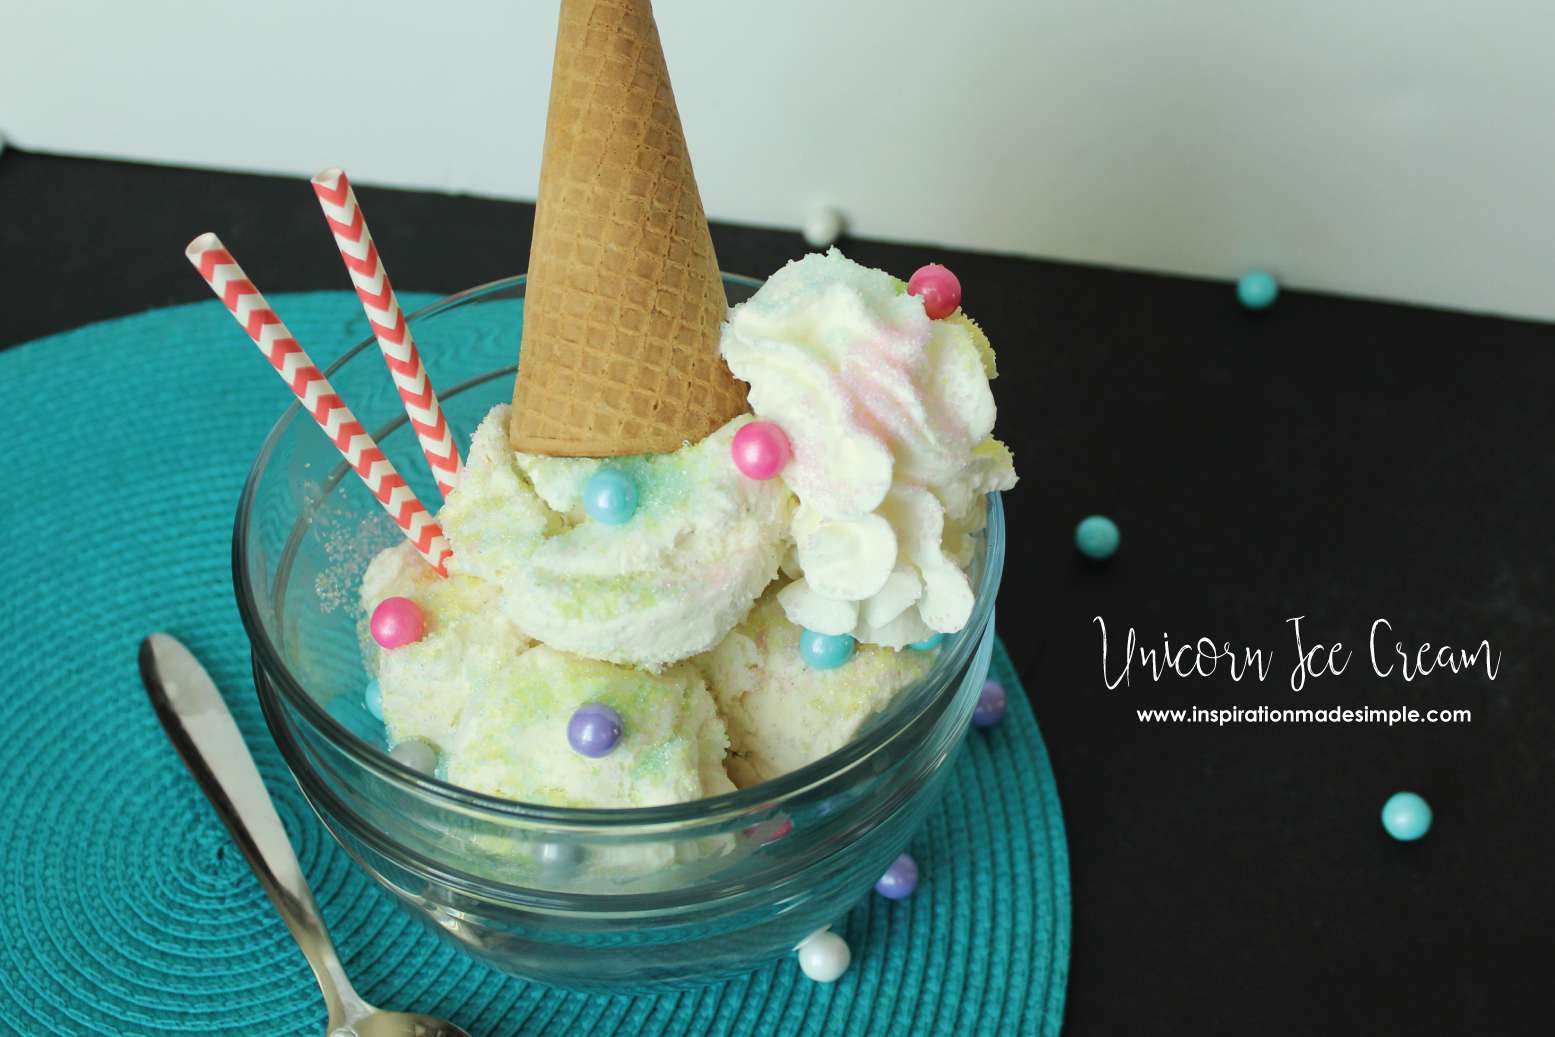 Super simple, yet totally delicious, Unicorn Ice Cream!